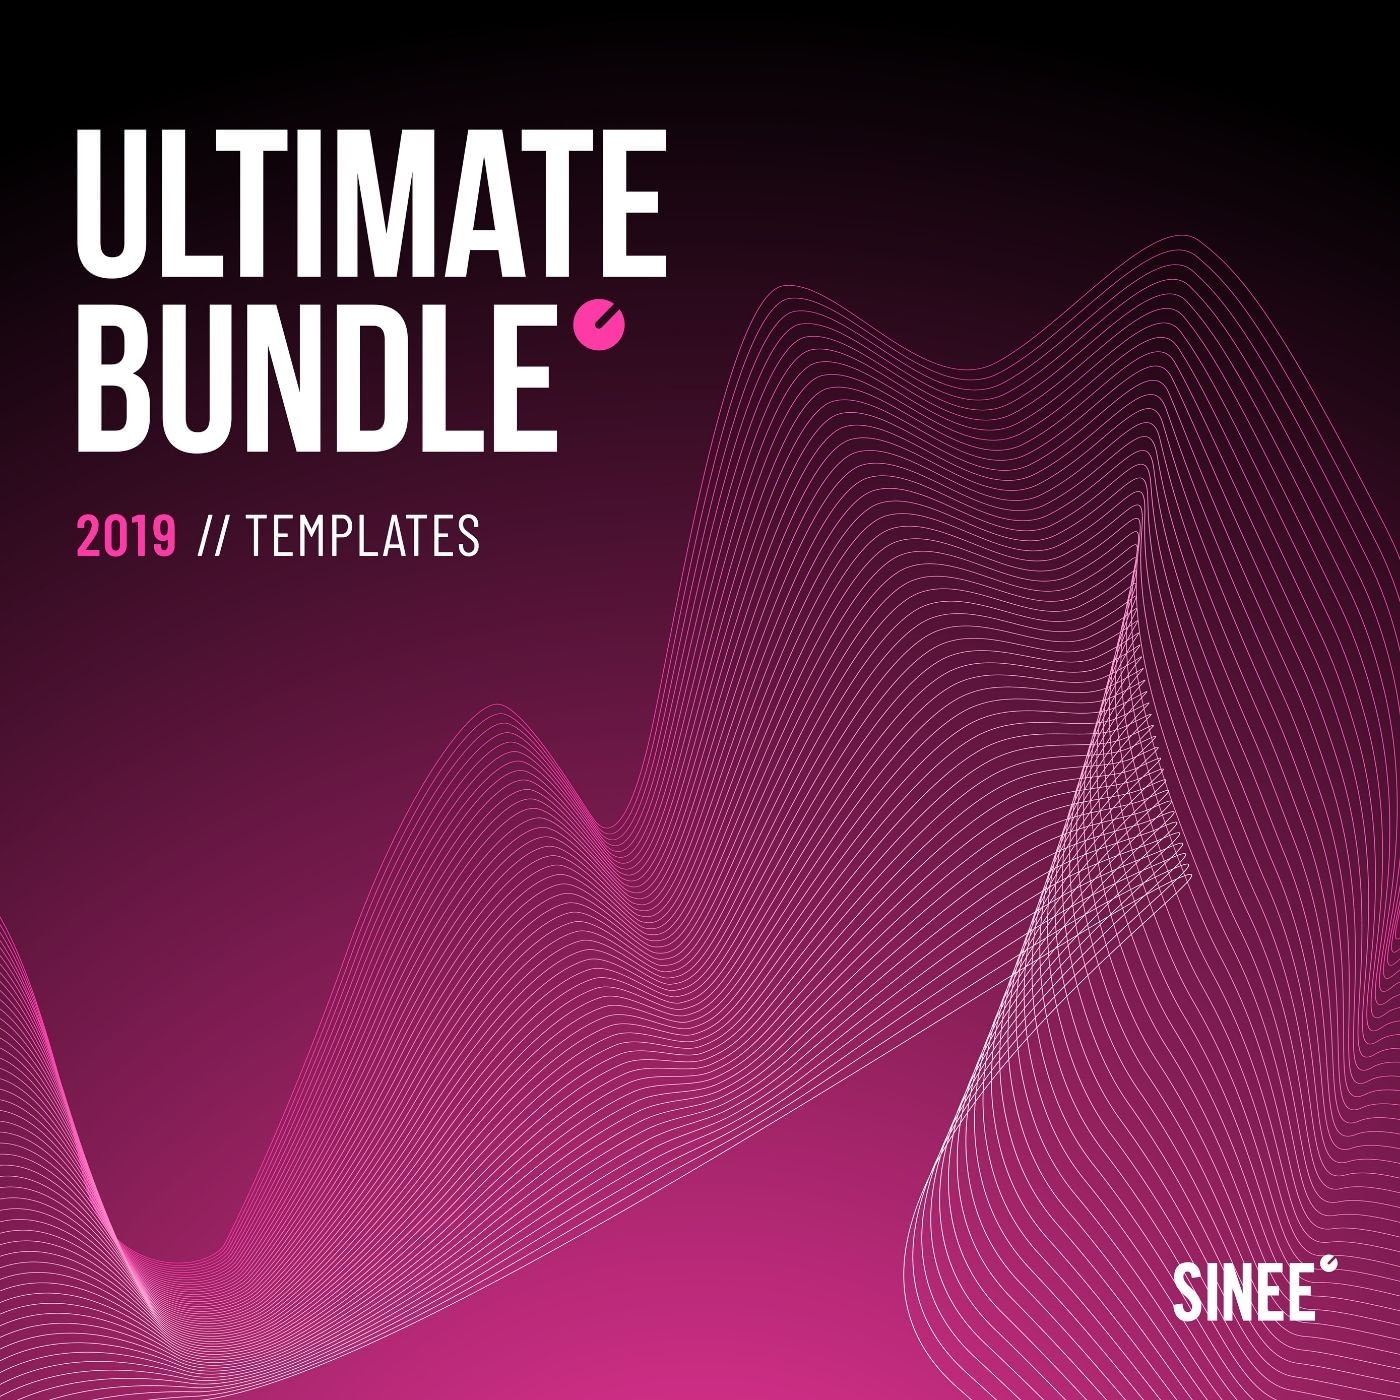 Ultimate Bundle 2019 – Templates